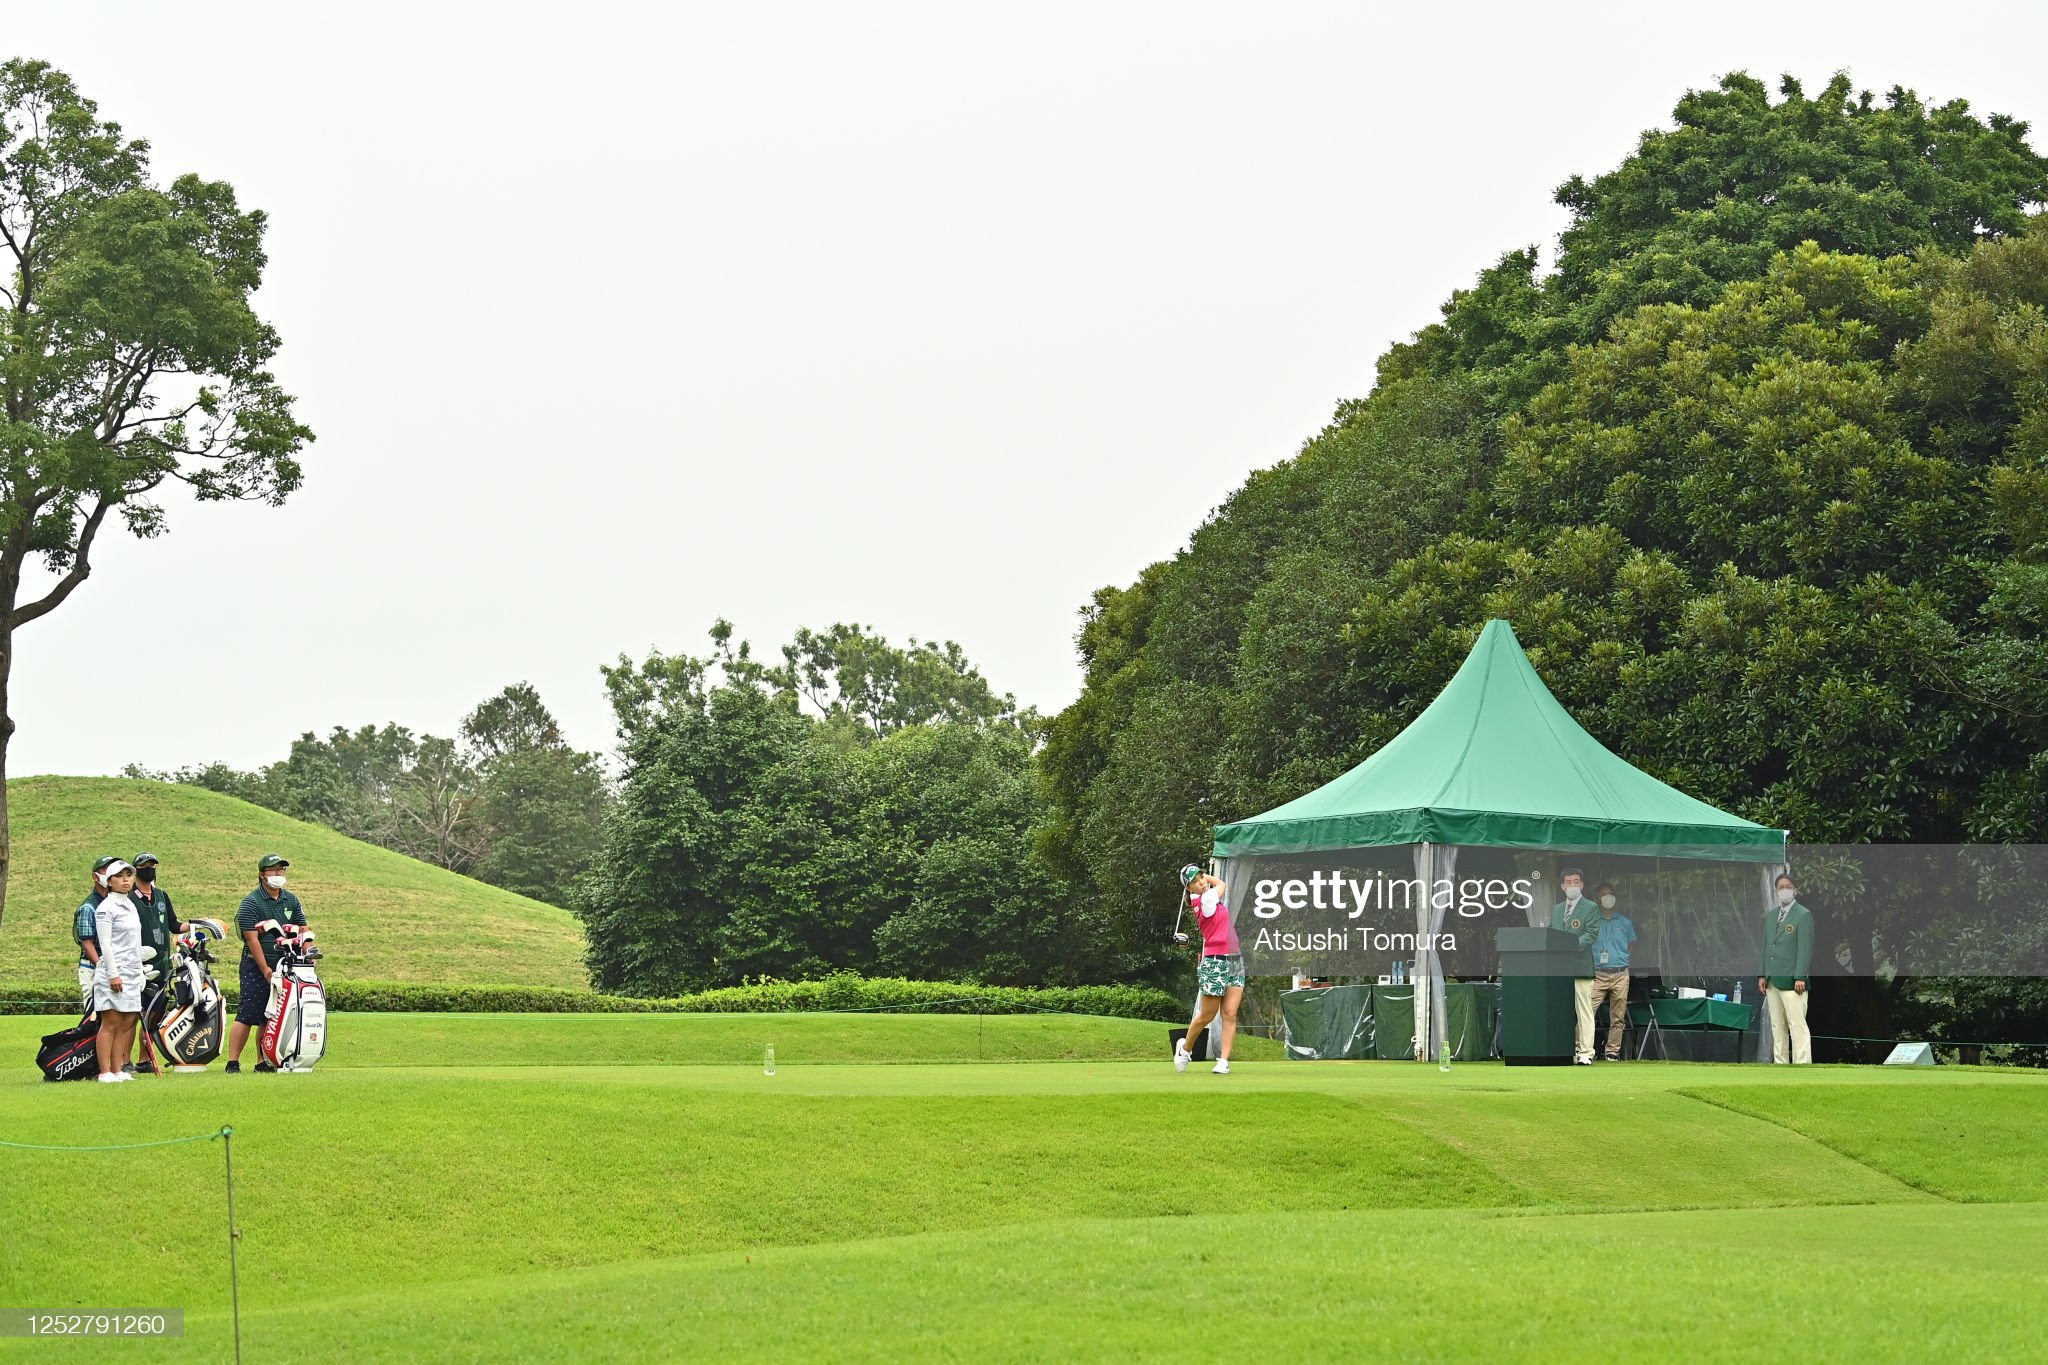 https://media.gettyimages.com/photos/momoko-ueda-of-japan-tees-off-on-the-10th-hole-during-the-third-round-picture-id1252791260?s=2048x2048